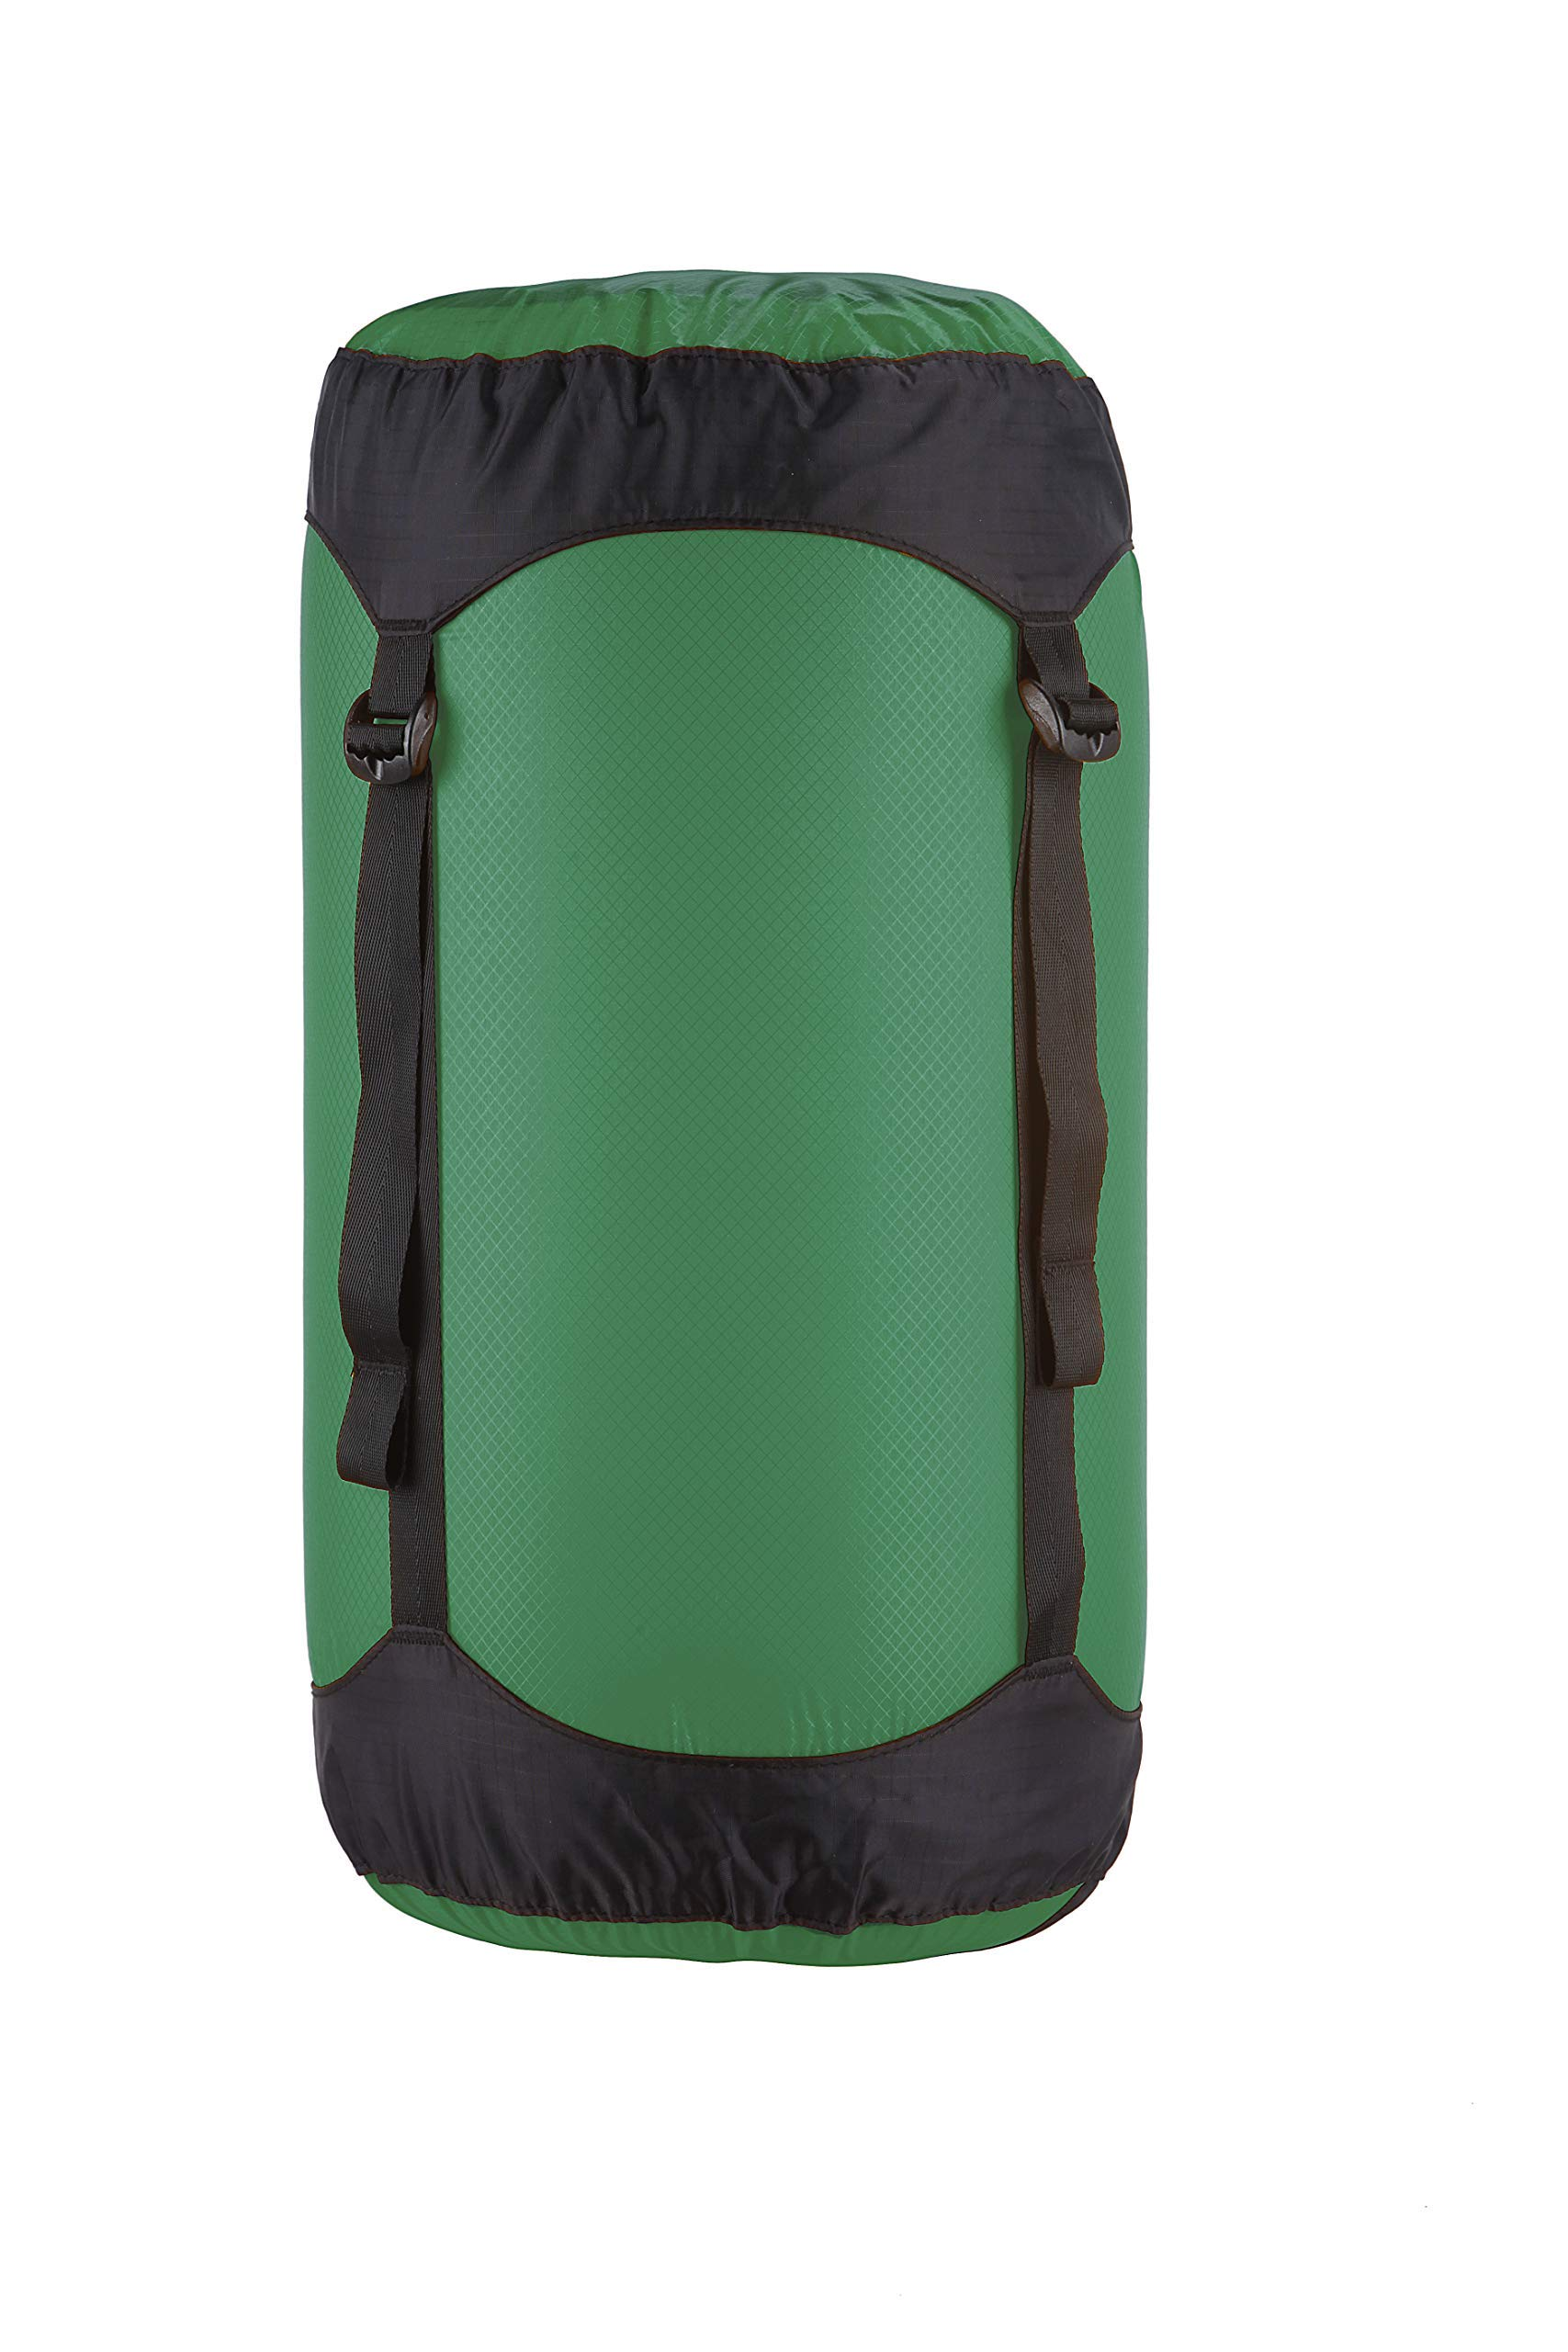 Sea to Summit Ultra-SIL Compression Sack, Forest Green, 20 Liter by Sea to Summit